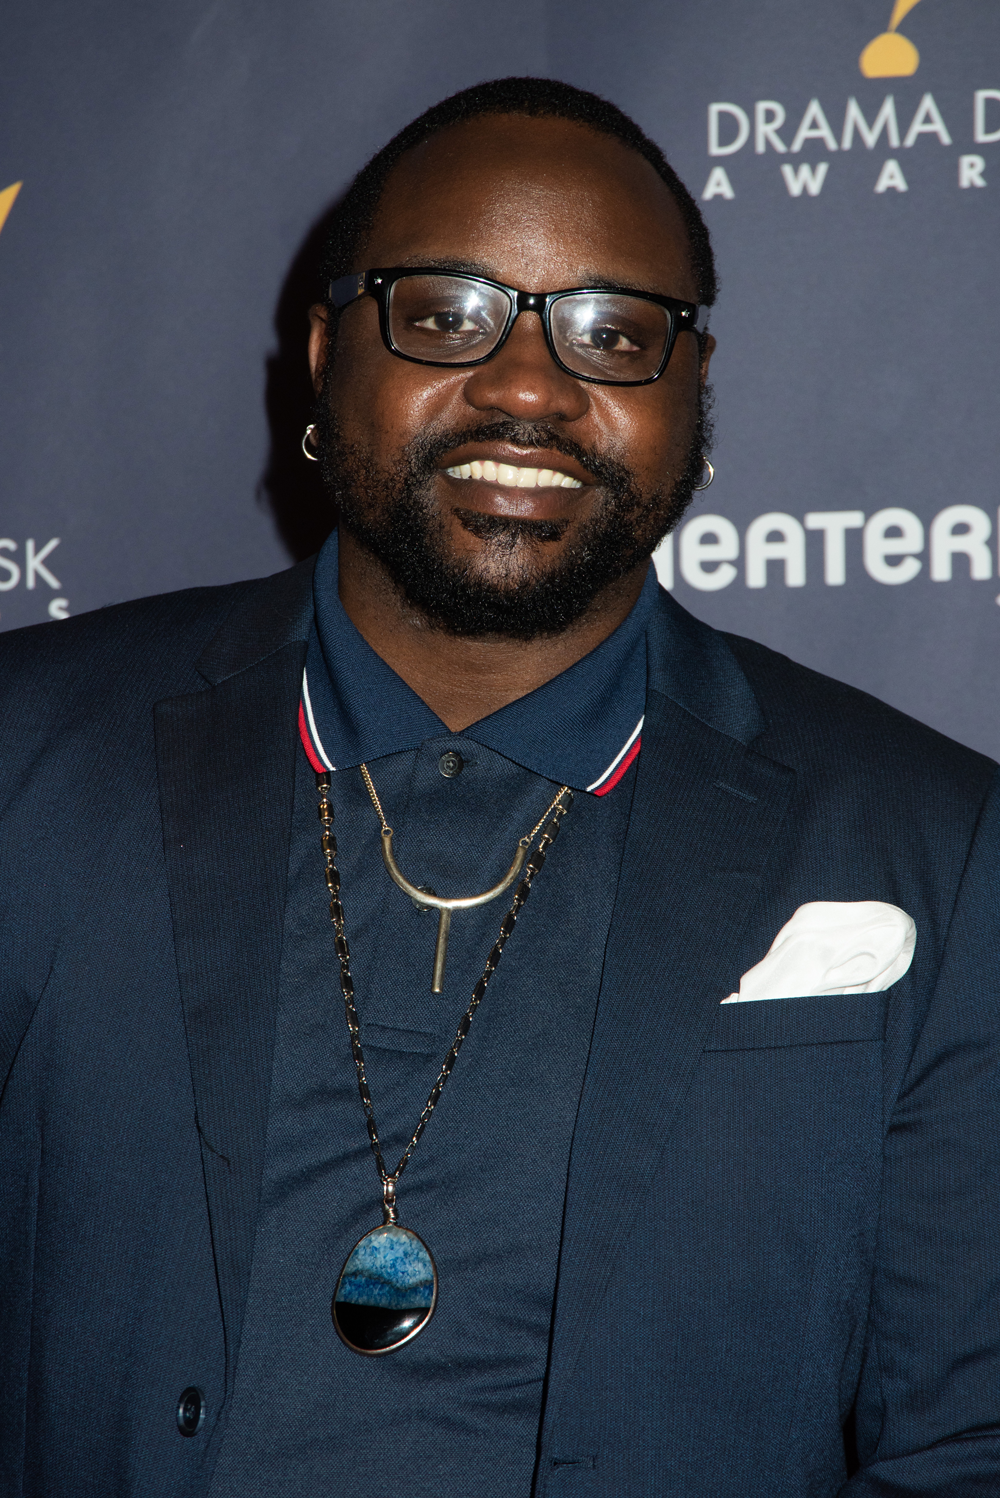 Brian Tyree Henry  at the 63rd Annual Drama Desk Awards